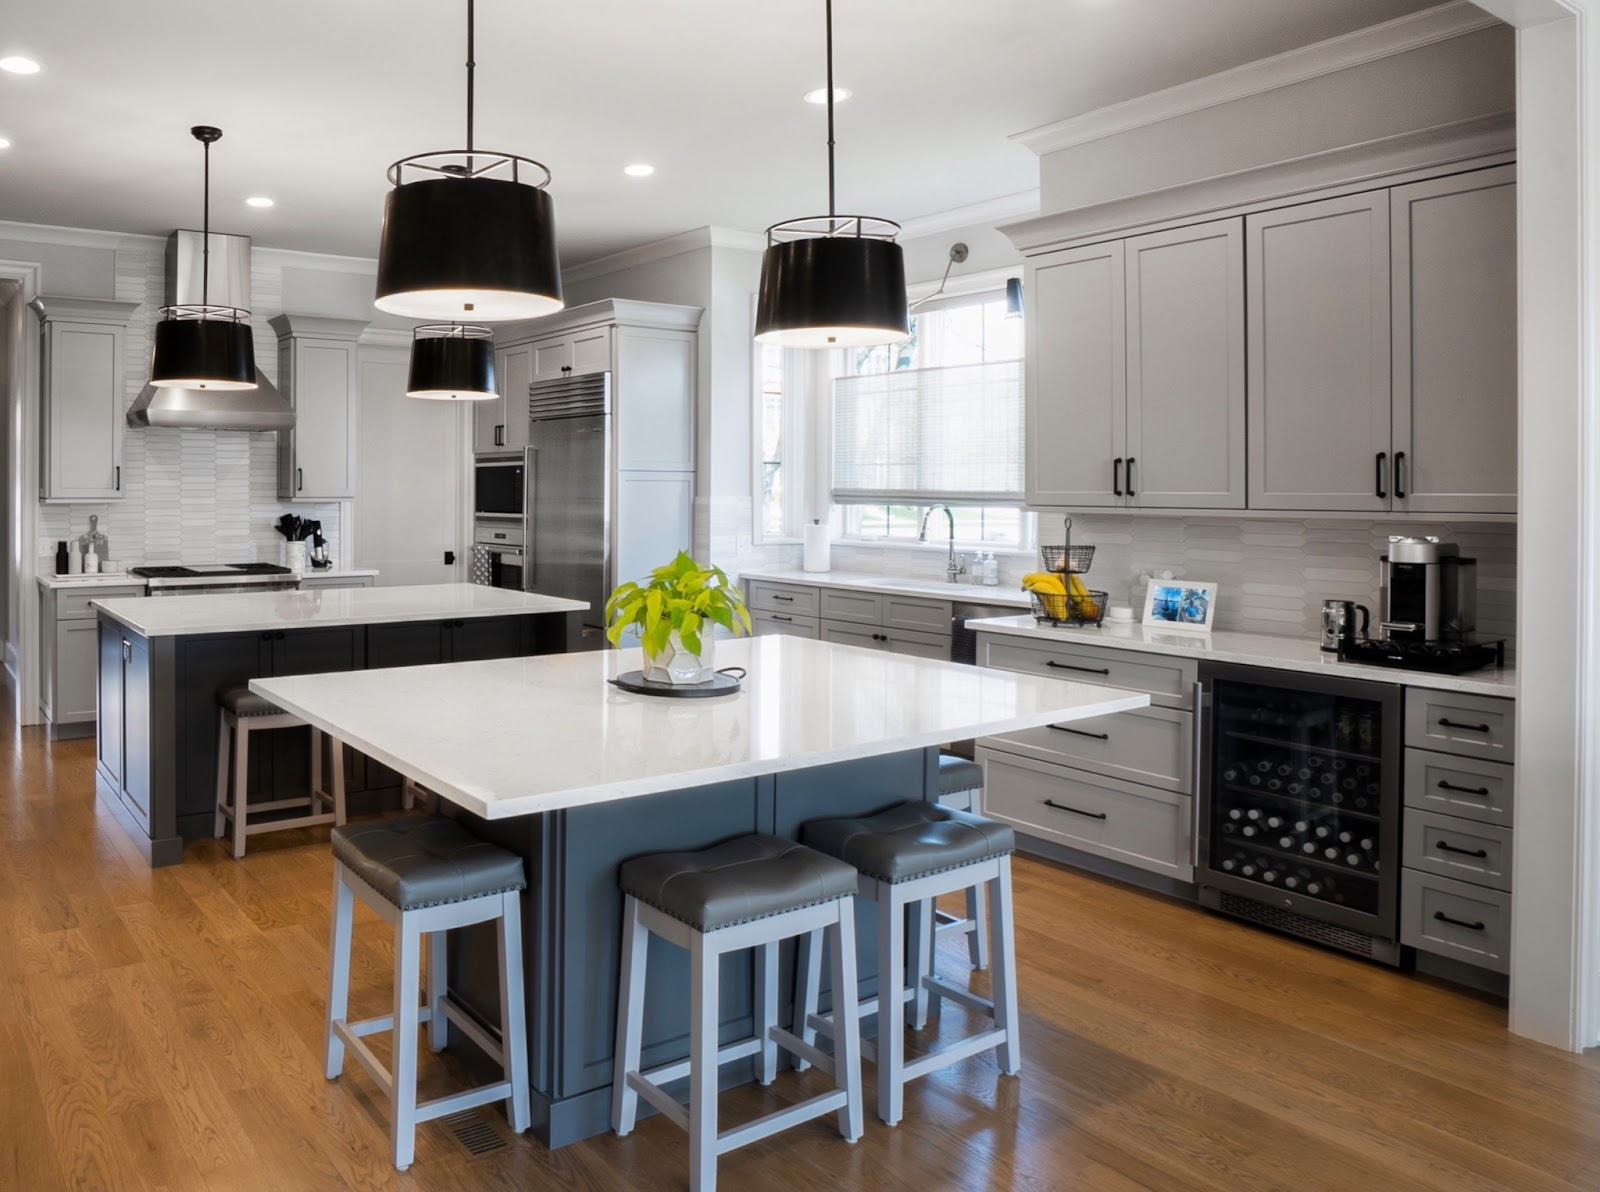 Modern Kitchen with dual islands and drum pendants. Featuring white cabinetry and countertops with contrasting gray island bases. Features a large beverage fridge  along with stainless steel appliance and range top hood.